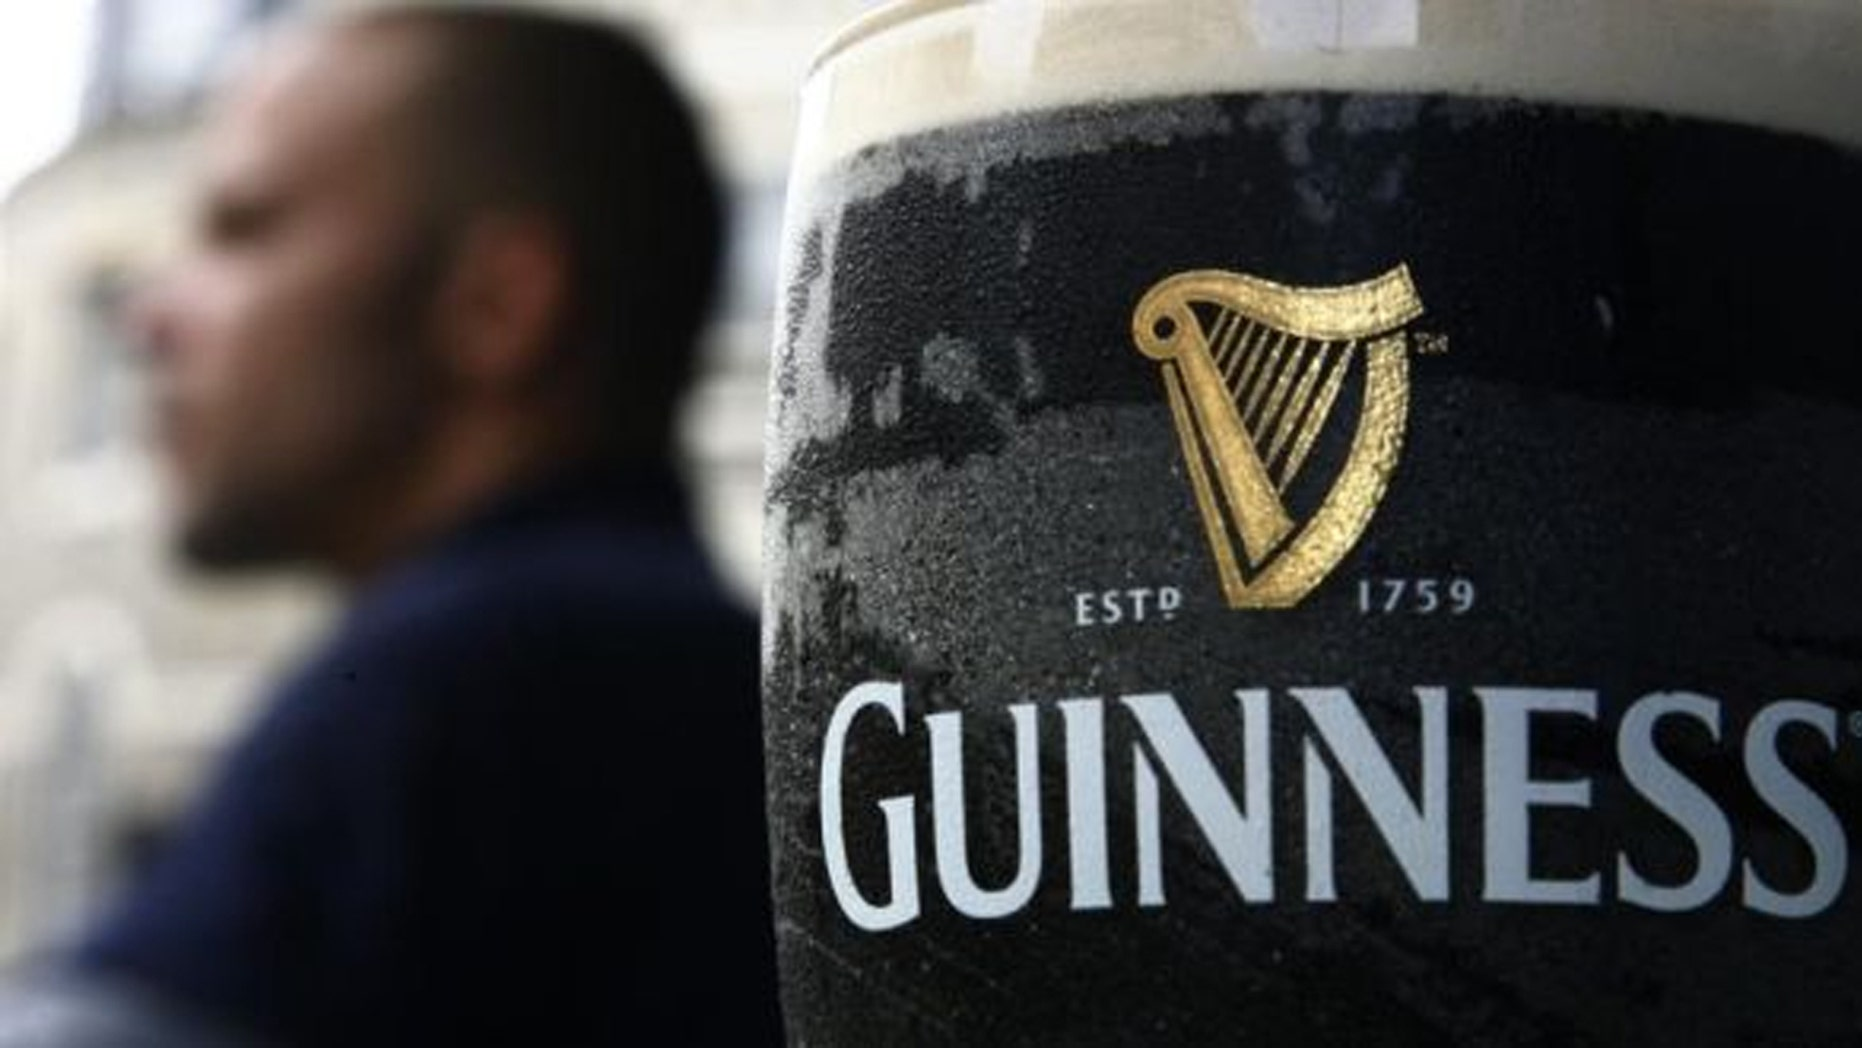 Guinness stout will no longer contain isinglass --a fish byproduct --starting in 2016.